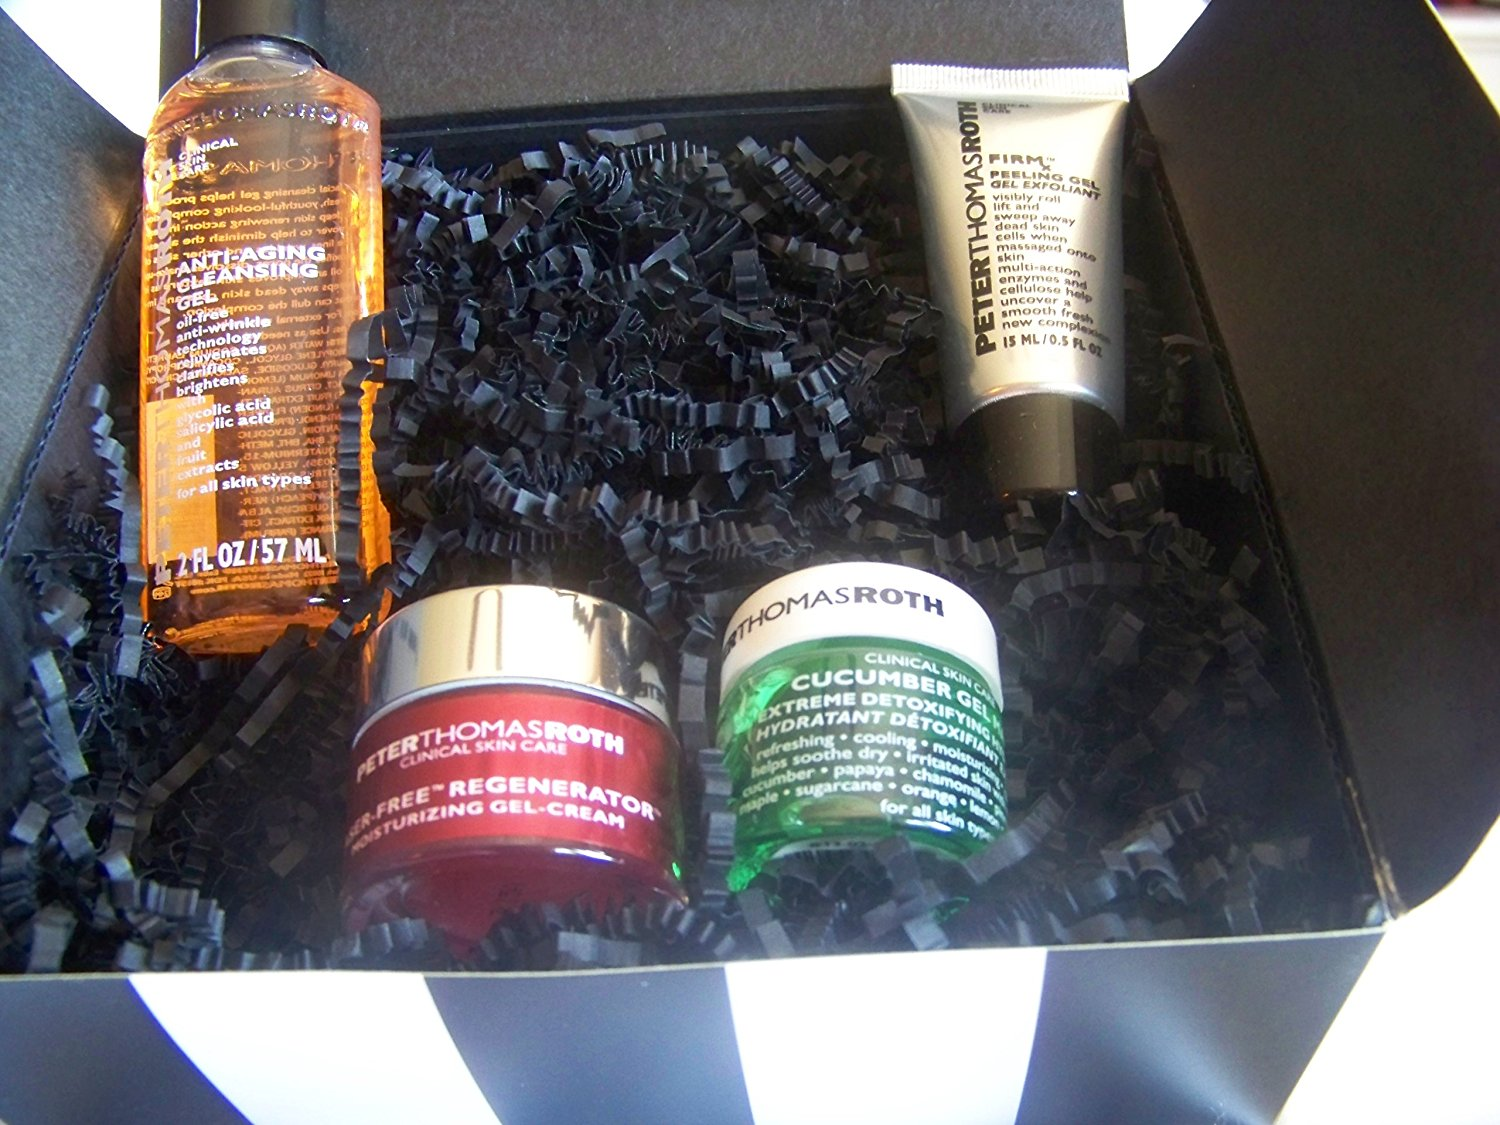 SEPHORA Beauty insider Best Face Forward by PETERTHOMASROTH : Cleanse -Peel -Detox & Soothe -Treat &Moisturize